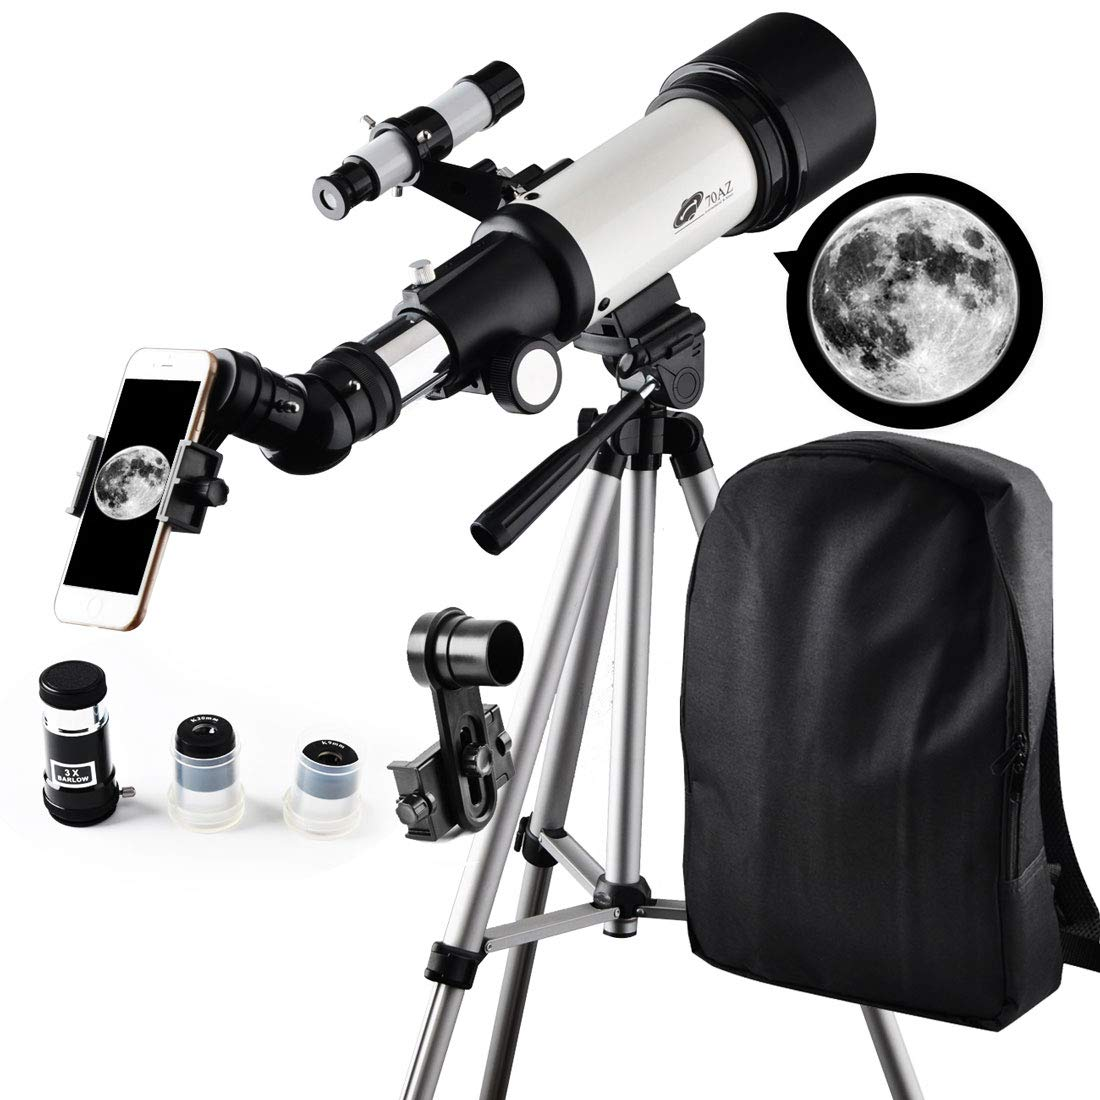 Telescope, Travel Scope, 70mm Aperture 400mm AZ Mount Astronomical Refractor Telescope for Kids Beginners - Portable Travel Telescope with Carry Bag, Smartphone Adapter by SOLOMARK